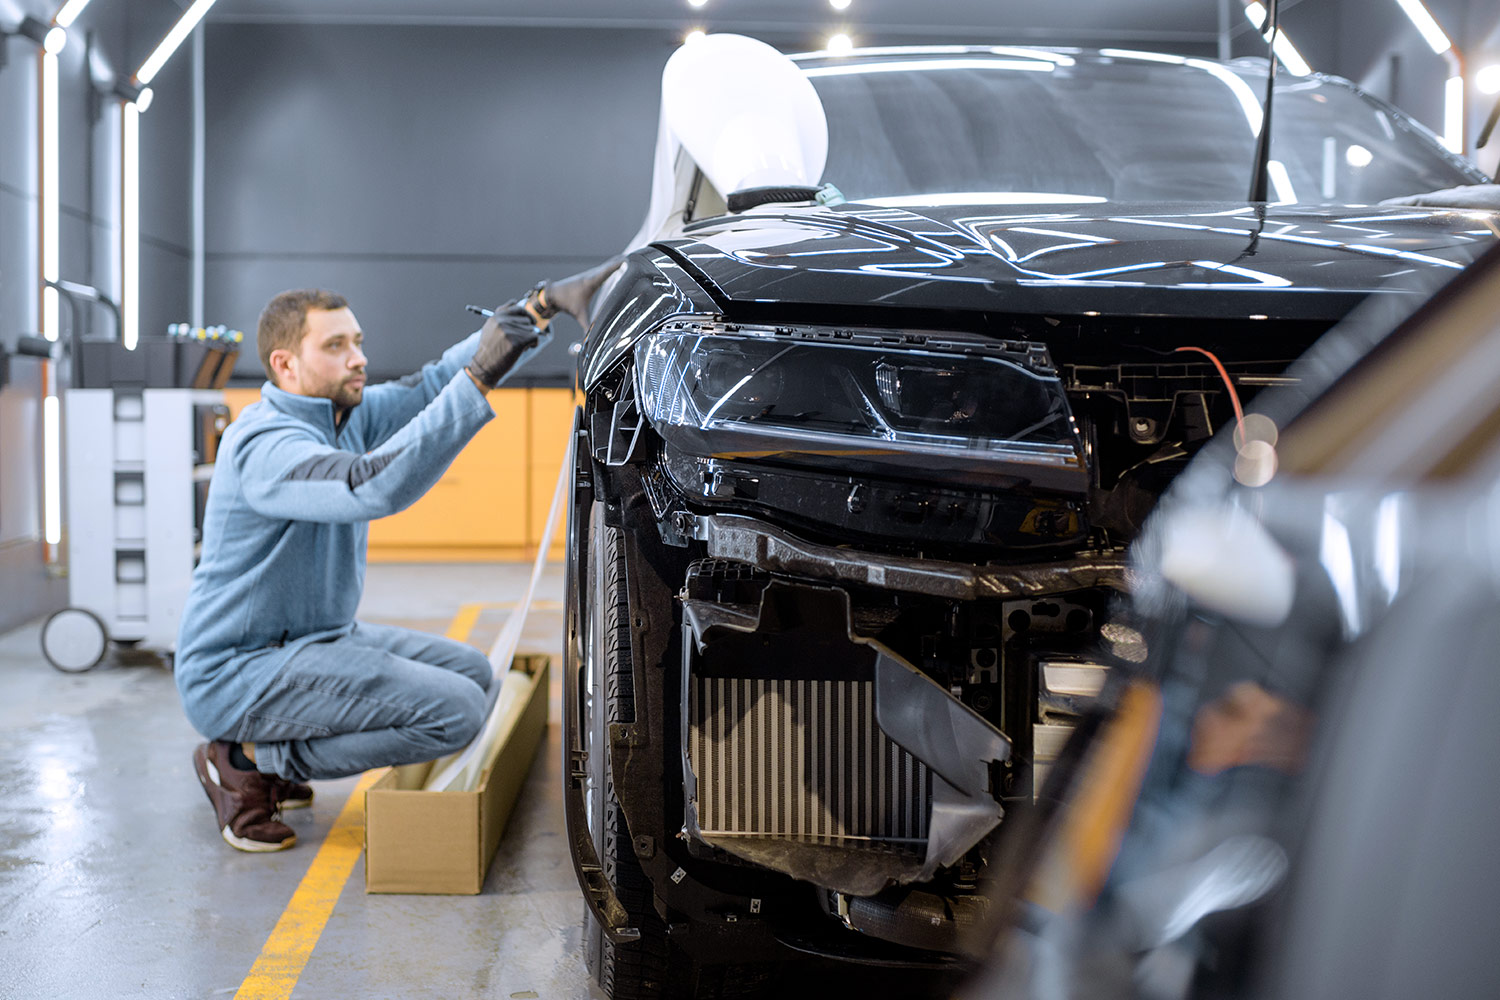 Car Painters to work in Norway for bodywork department